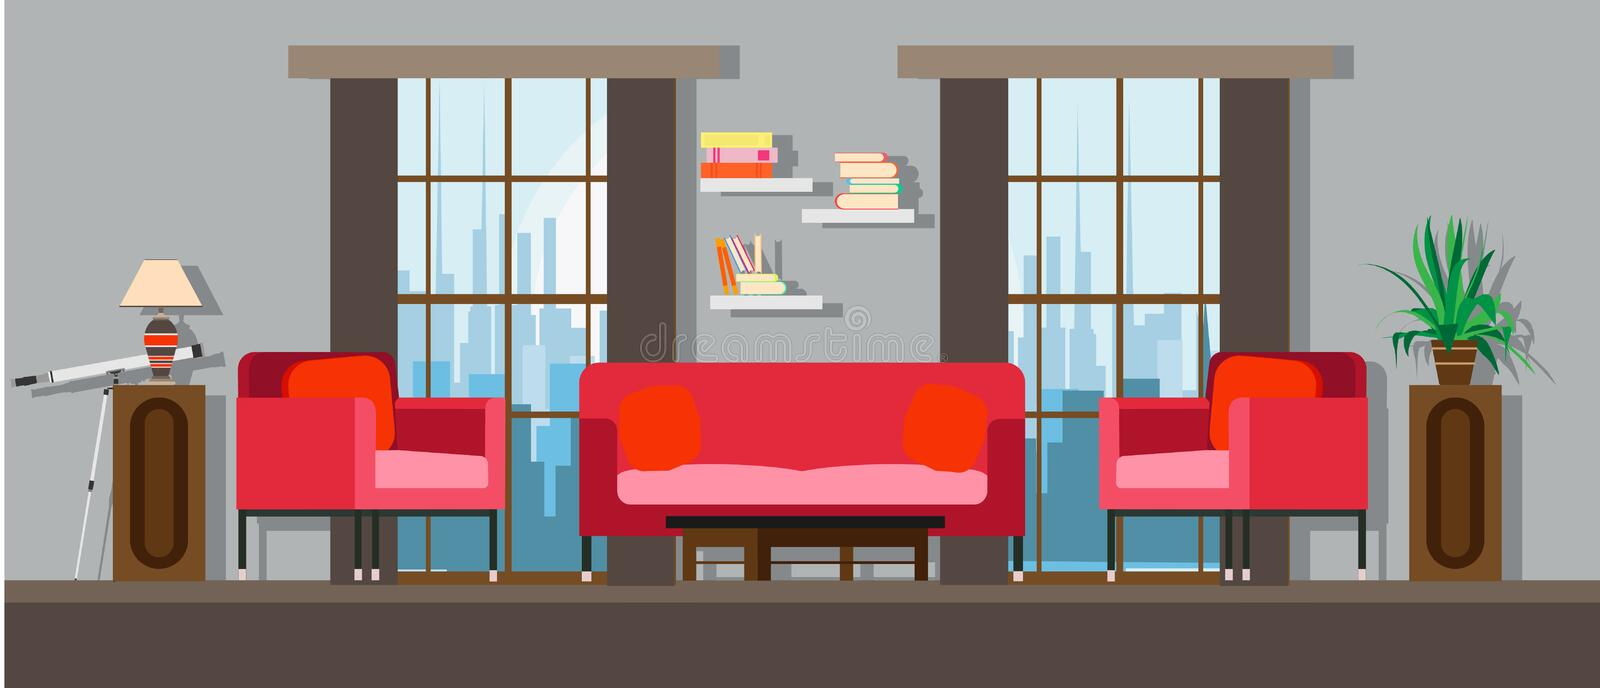 Interior living room home furniture design. Modern house apartment sofa vector. Flat bright window, table, wall decor. Illustratio. N floor concept lamp, plant royalty free illustration